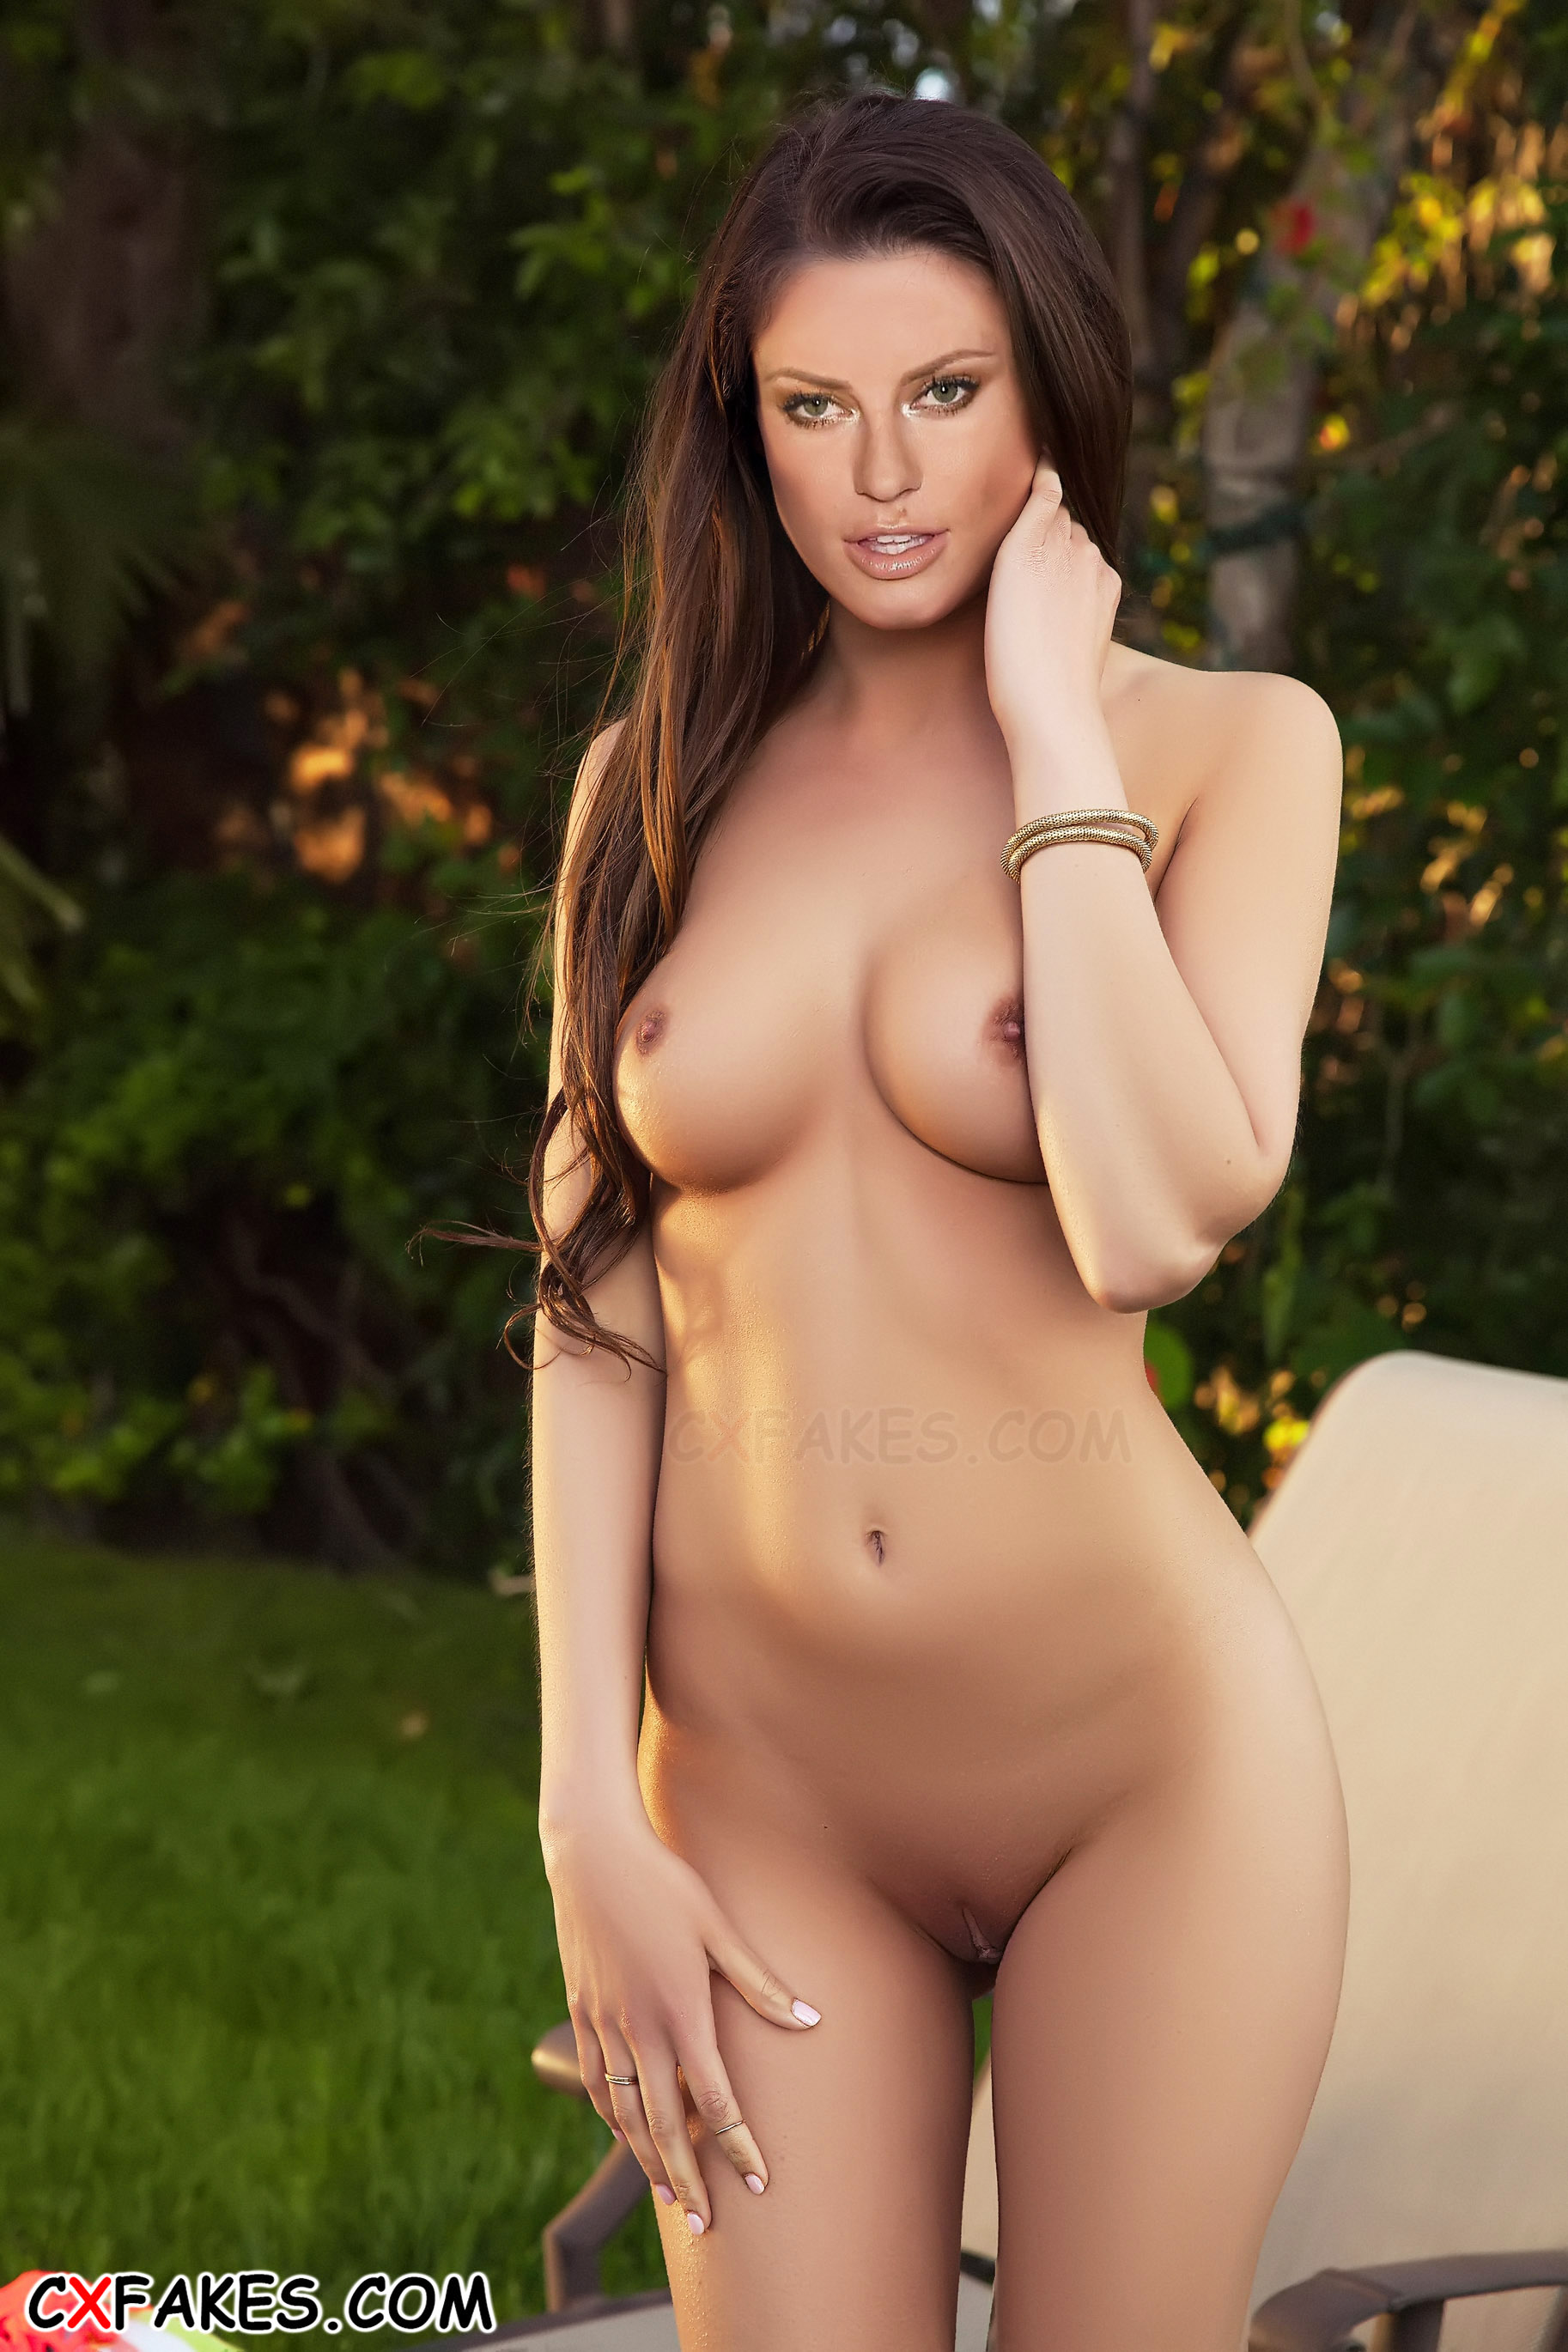 Hannah Stocking Leaked hannah stocking nude leaked pictures (4) | cxfakes